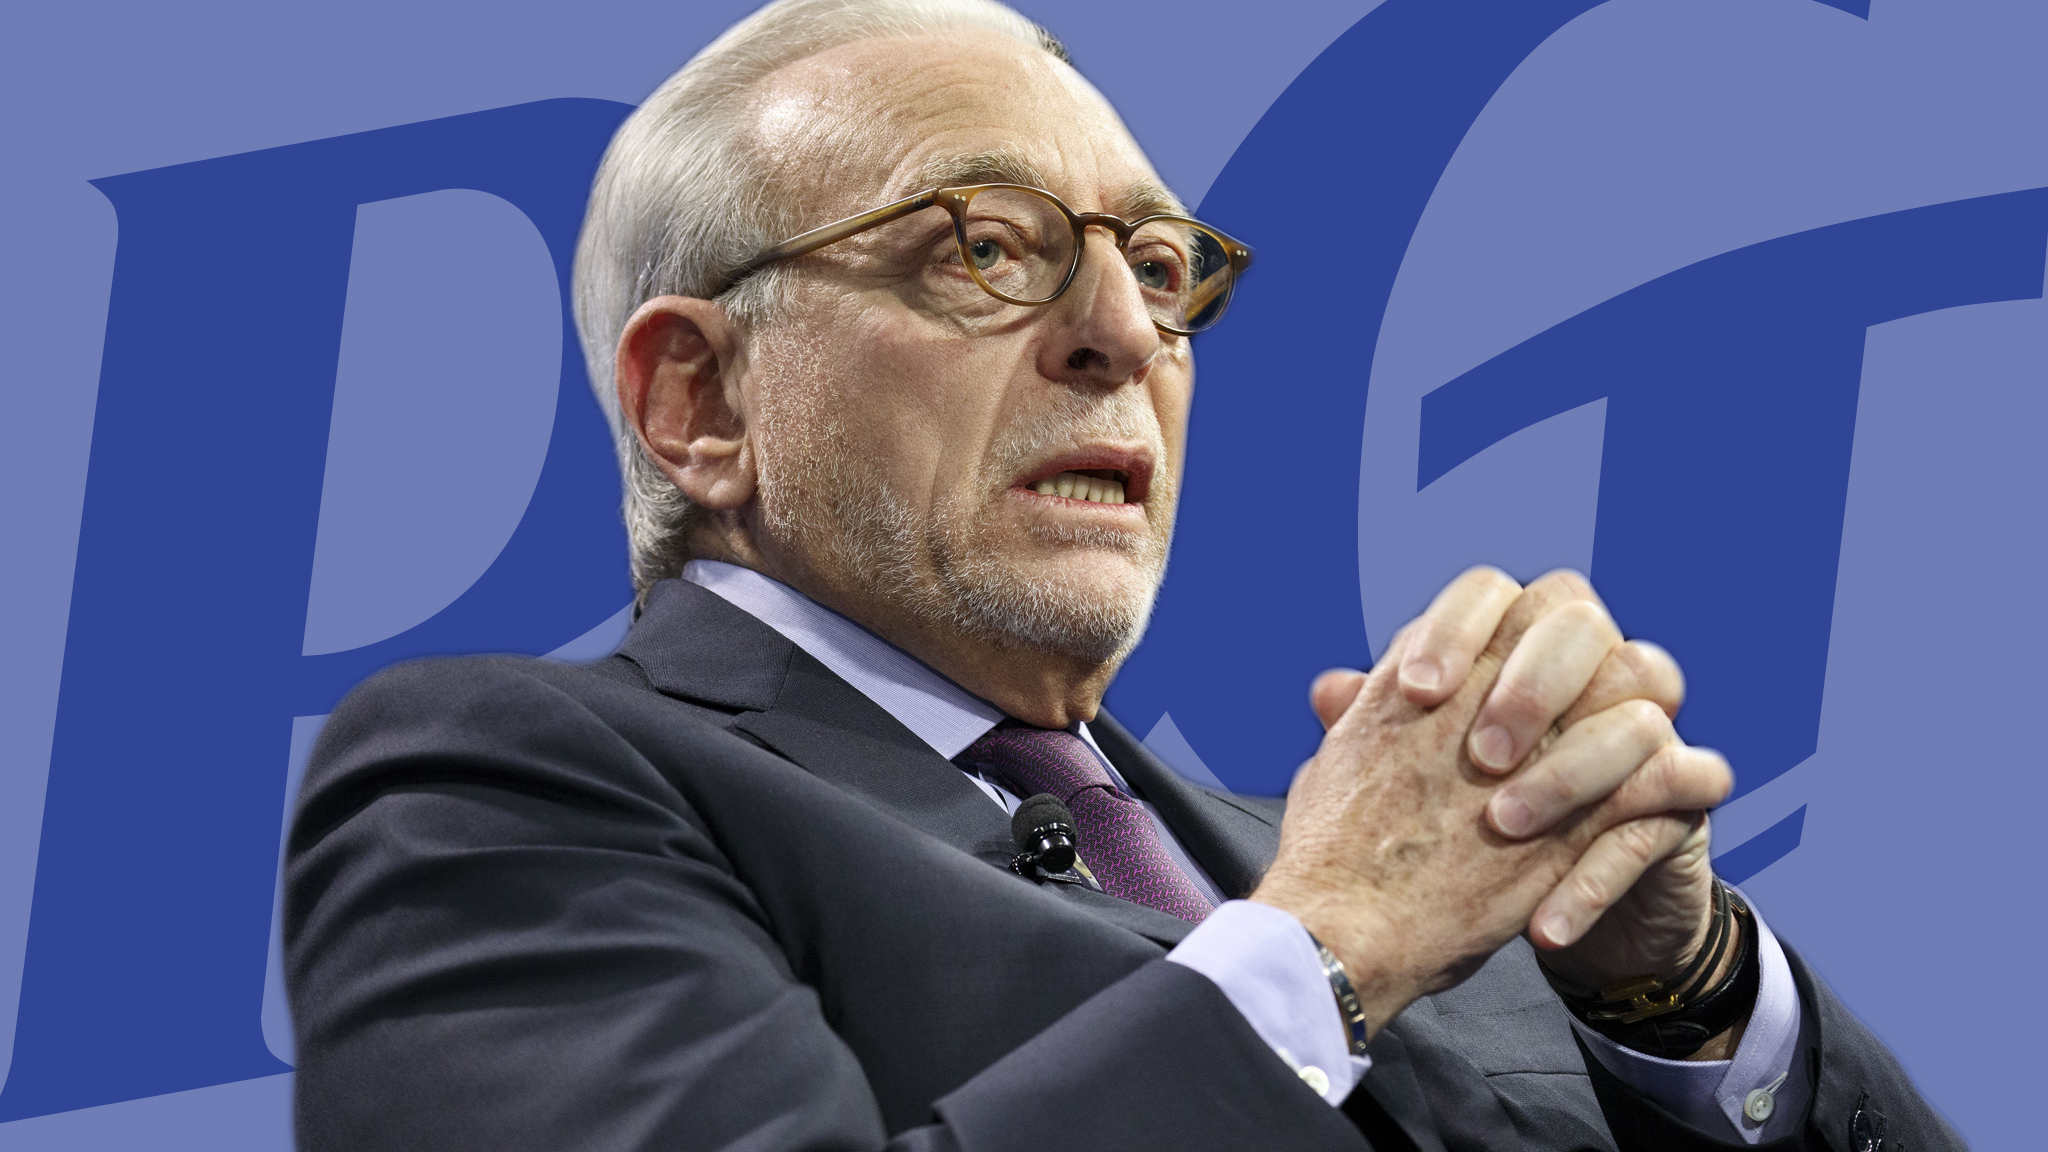 Nelson Peltz secures board seat at P&G